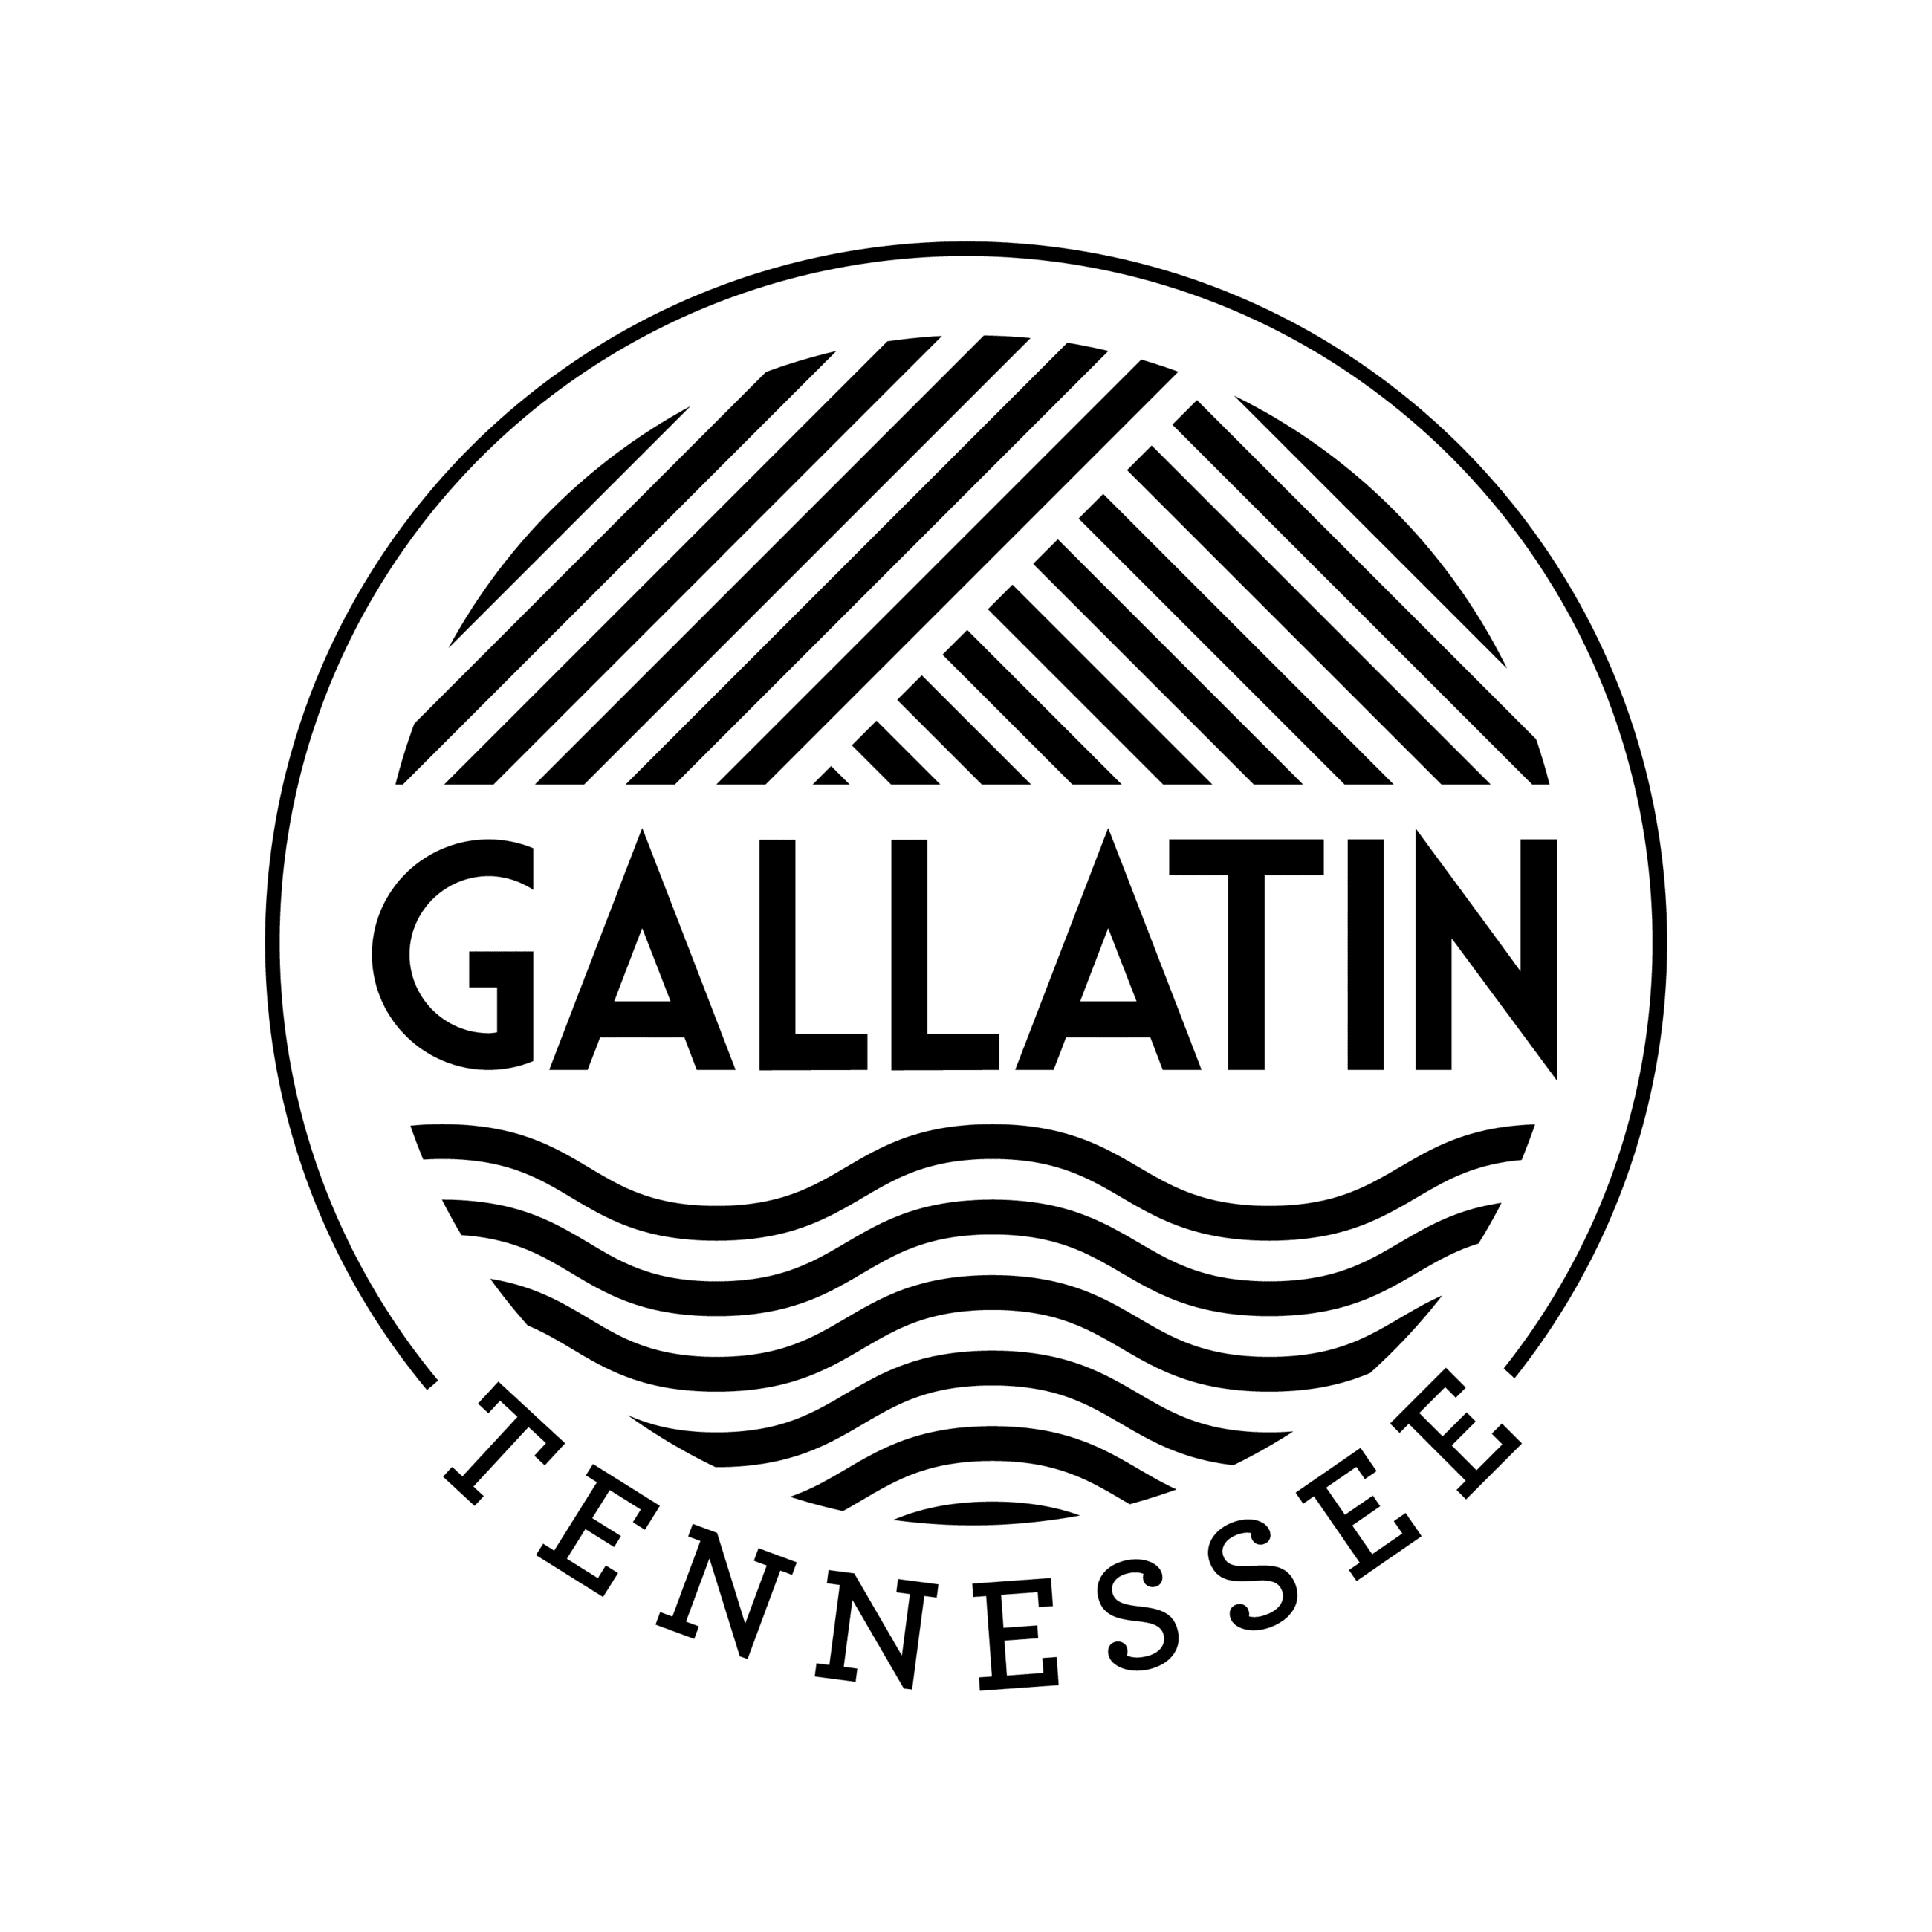 Gallatin Black and White Logo with Tennessee